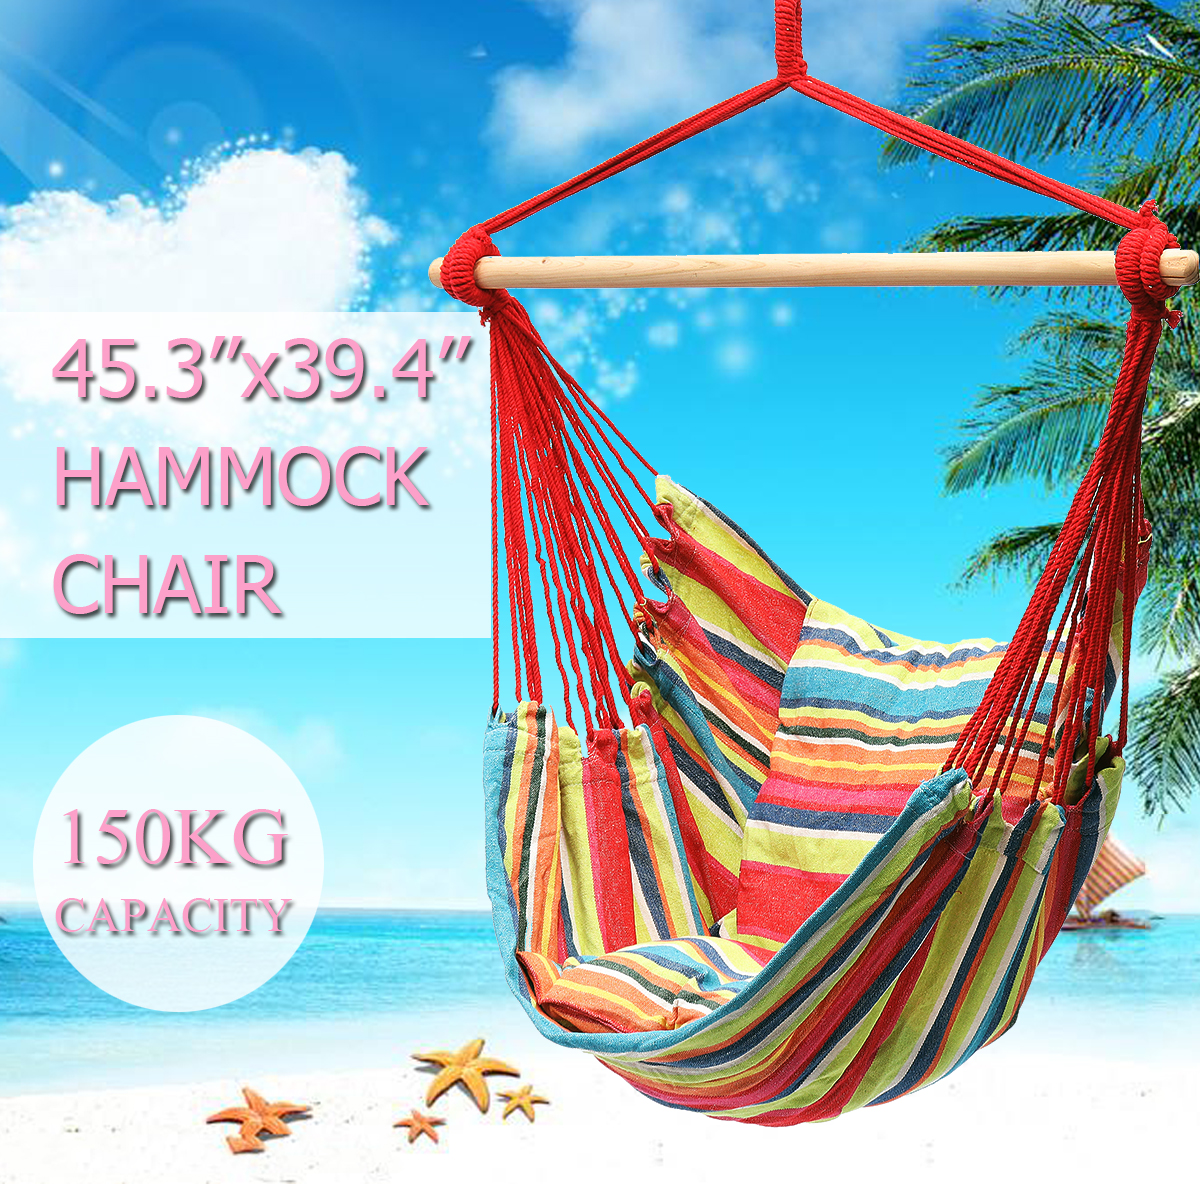 Fashion Hanging Swinging Chair Indoor Outdoor Furniture Hammocks Chair Canvas Dormitory Garden Swing + 2 Pillows Hammock Camping portable outdoor furniture hammock garden swing hanging chair hang swinging outdoor camping swing canvas red stripe